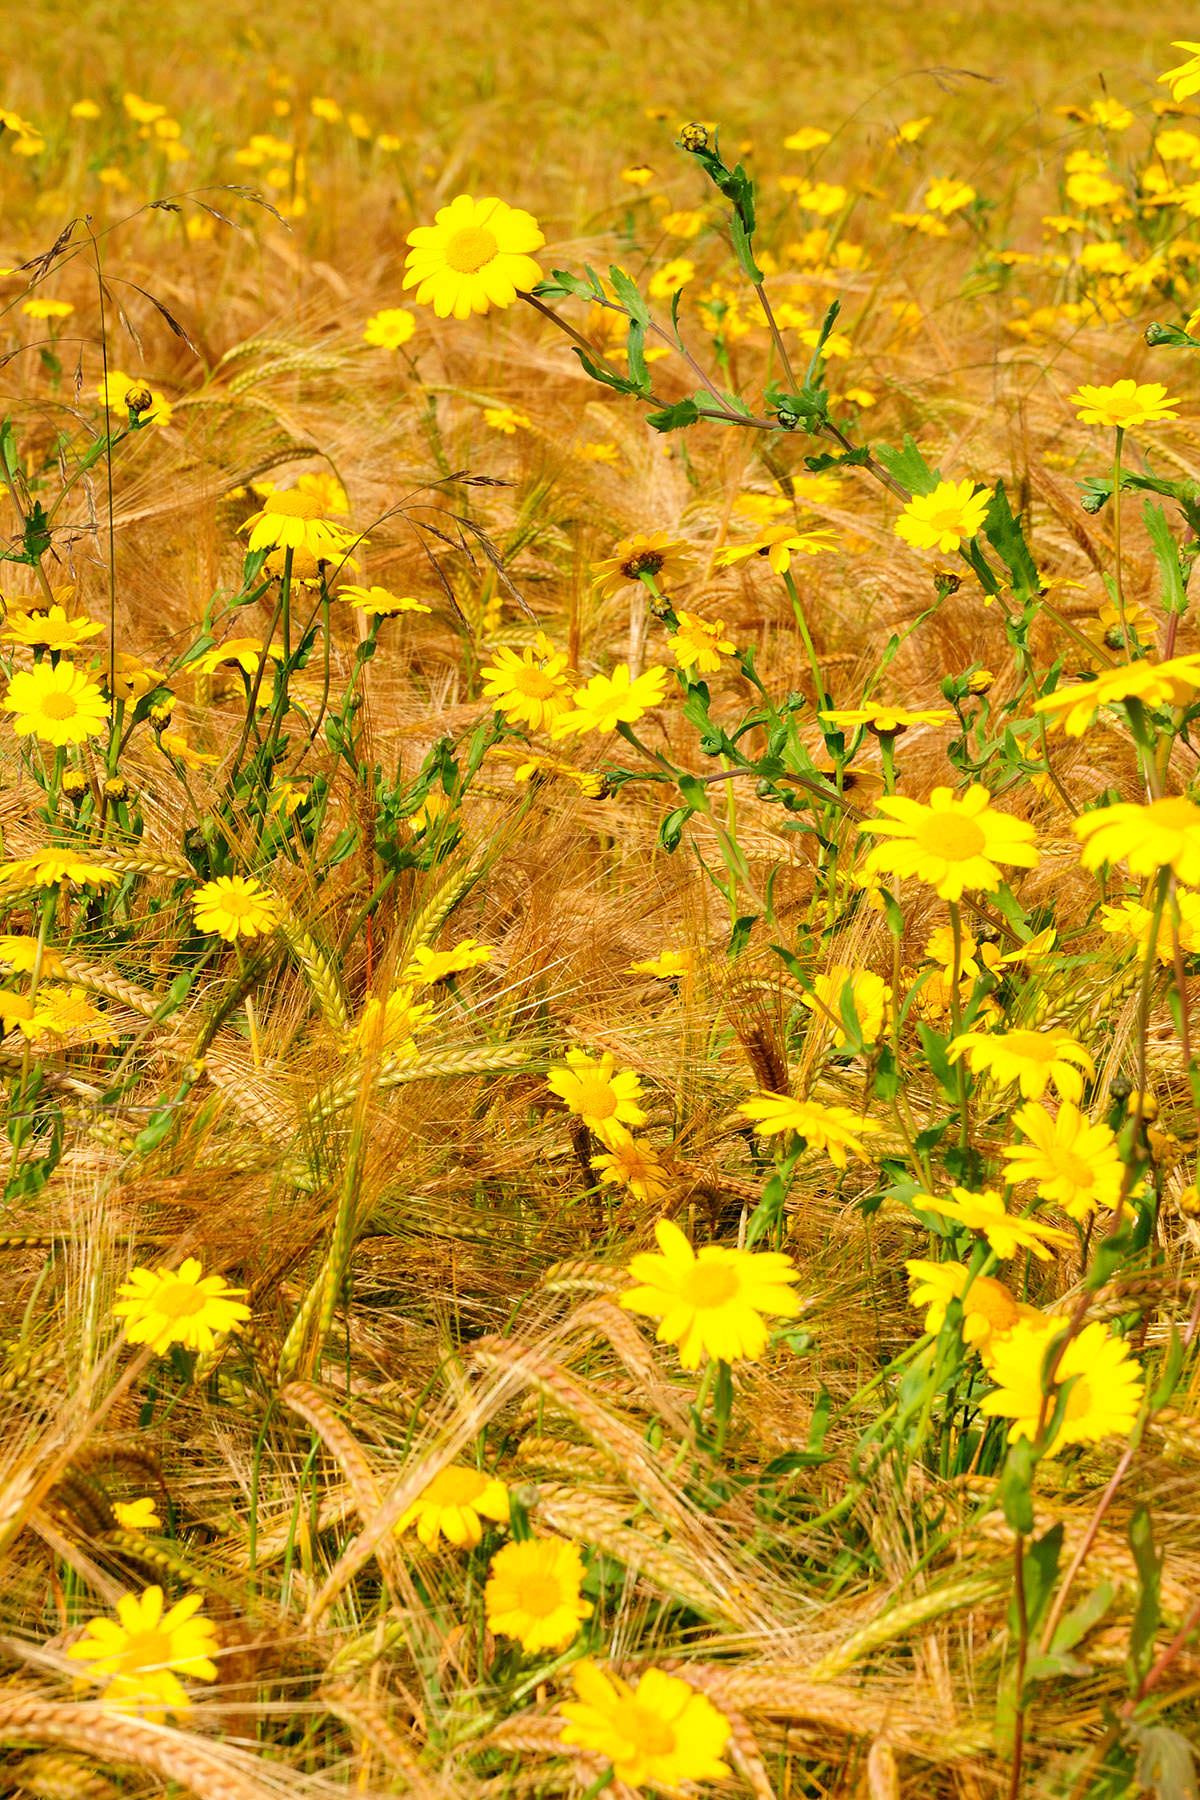 Numerous yellow corn marigold flowers, some in soft focus, growing in a field of golden barley